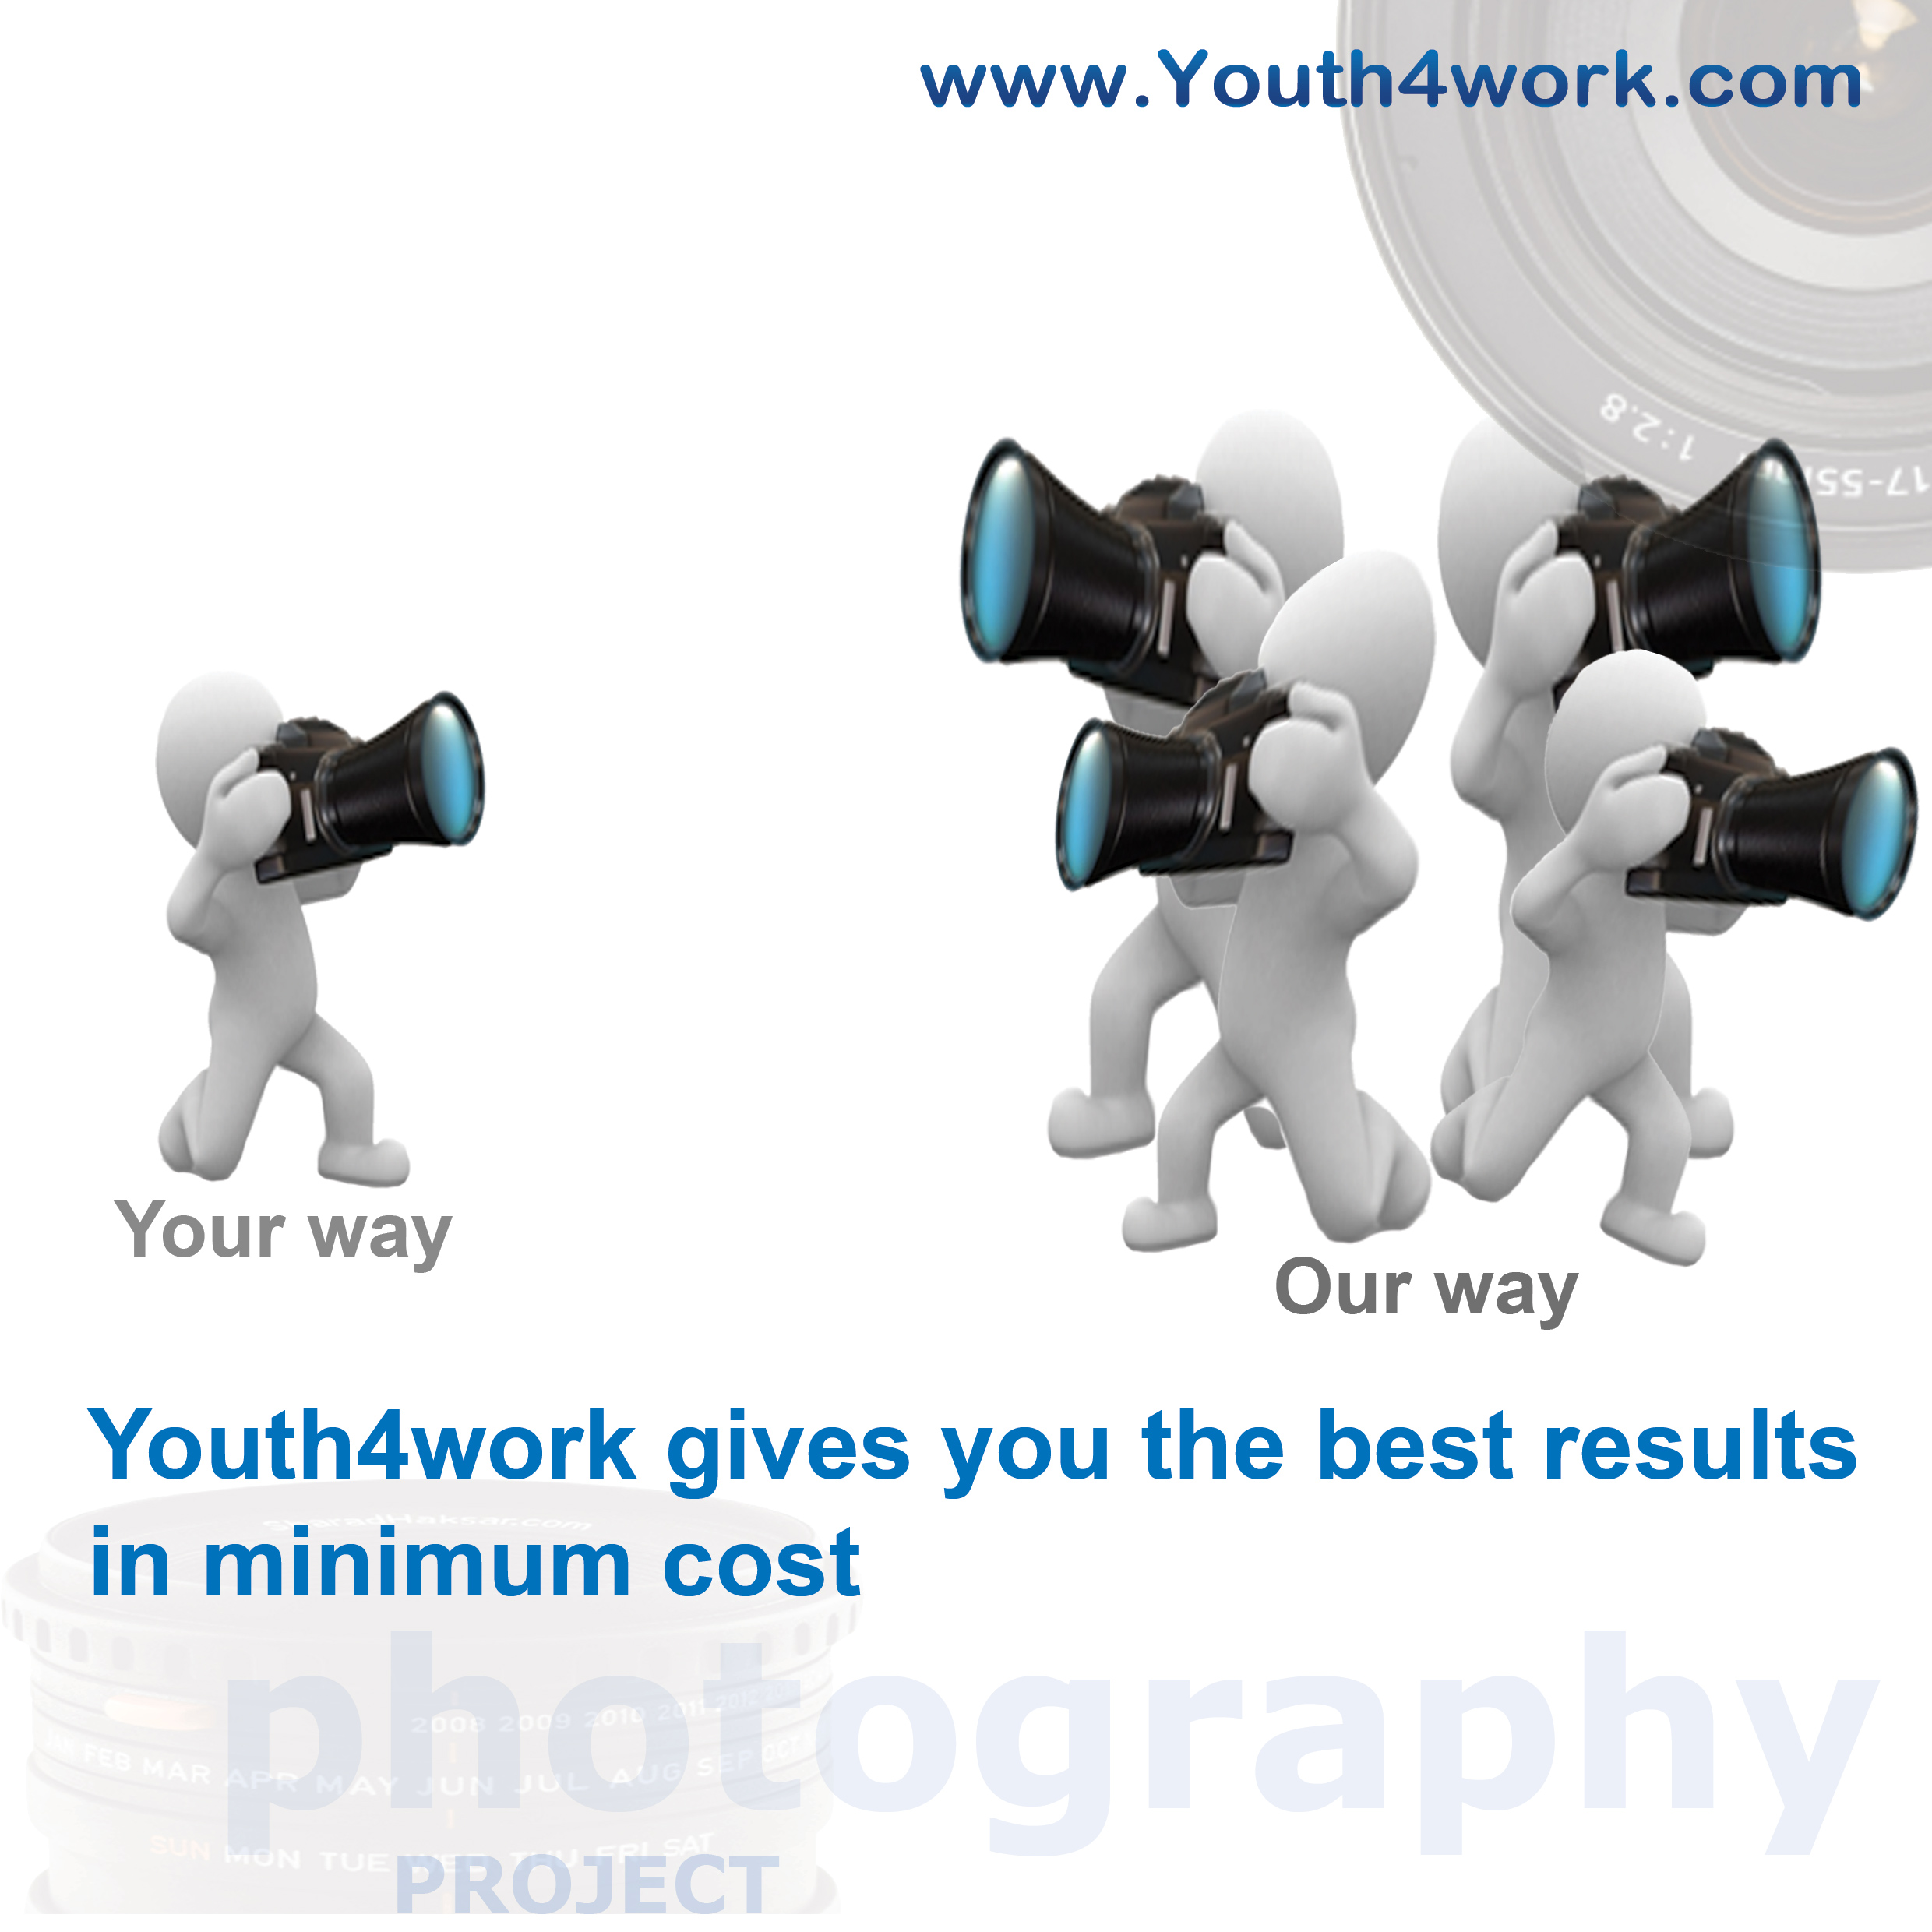 Youth4work gives you the best results in minimum cost